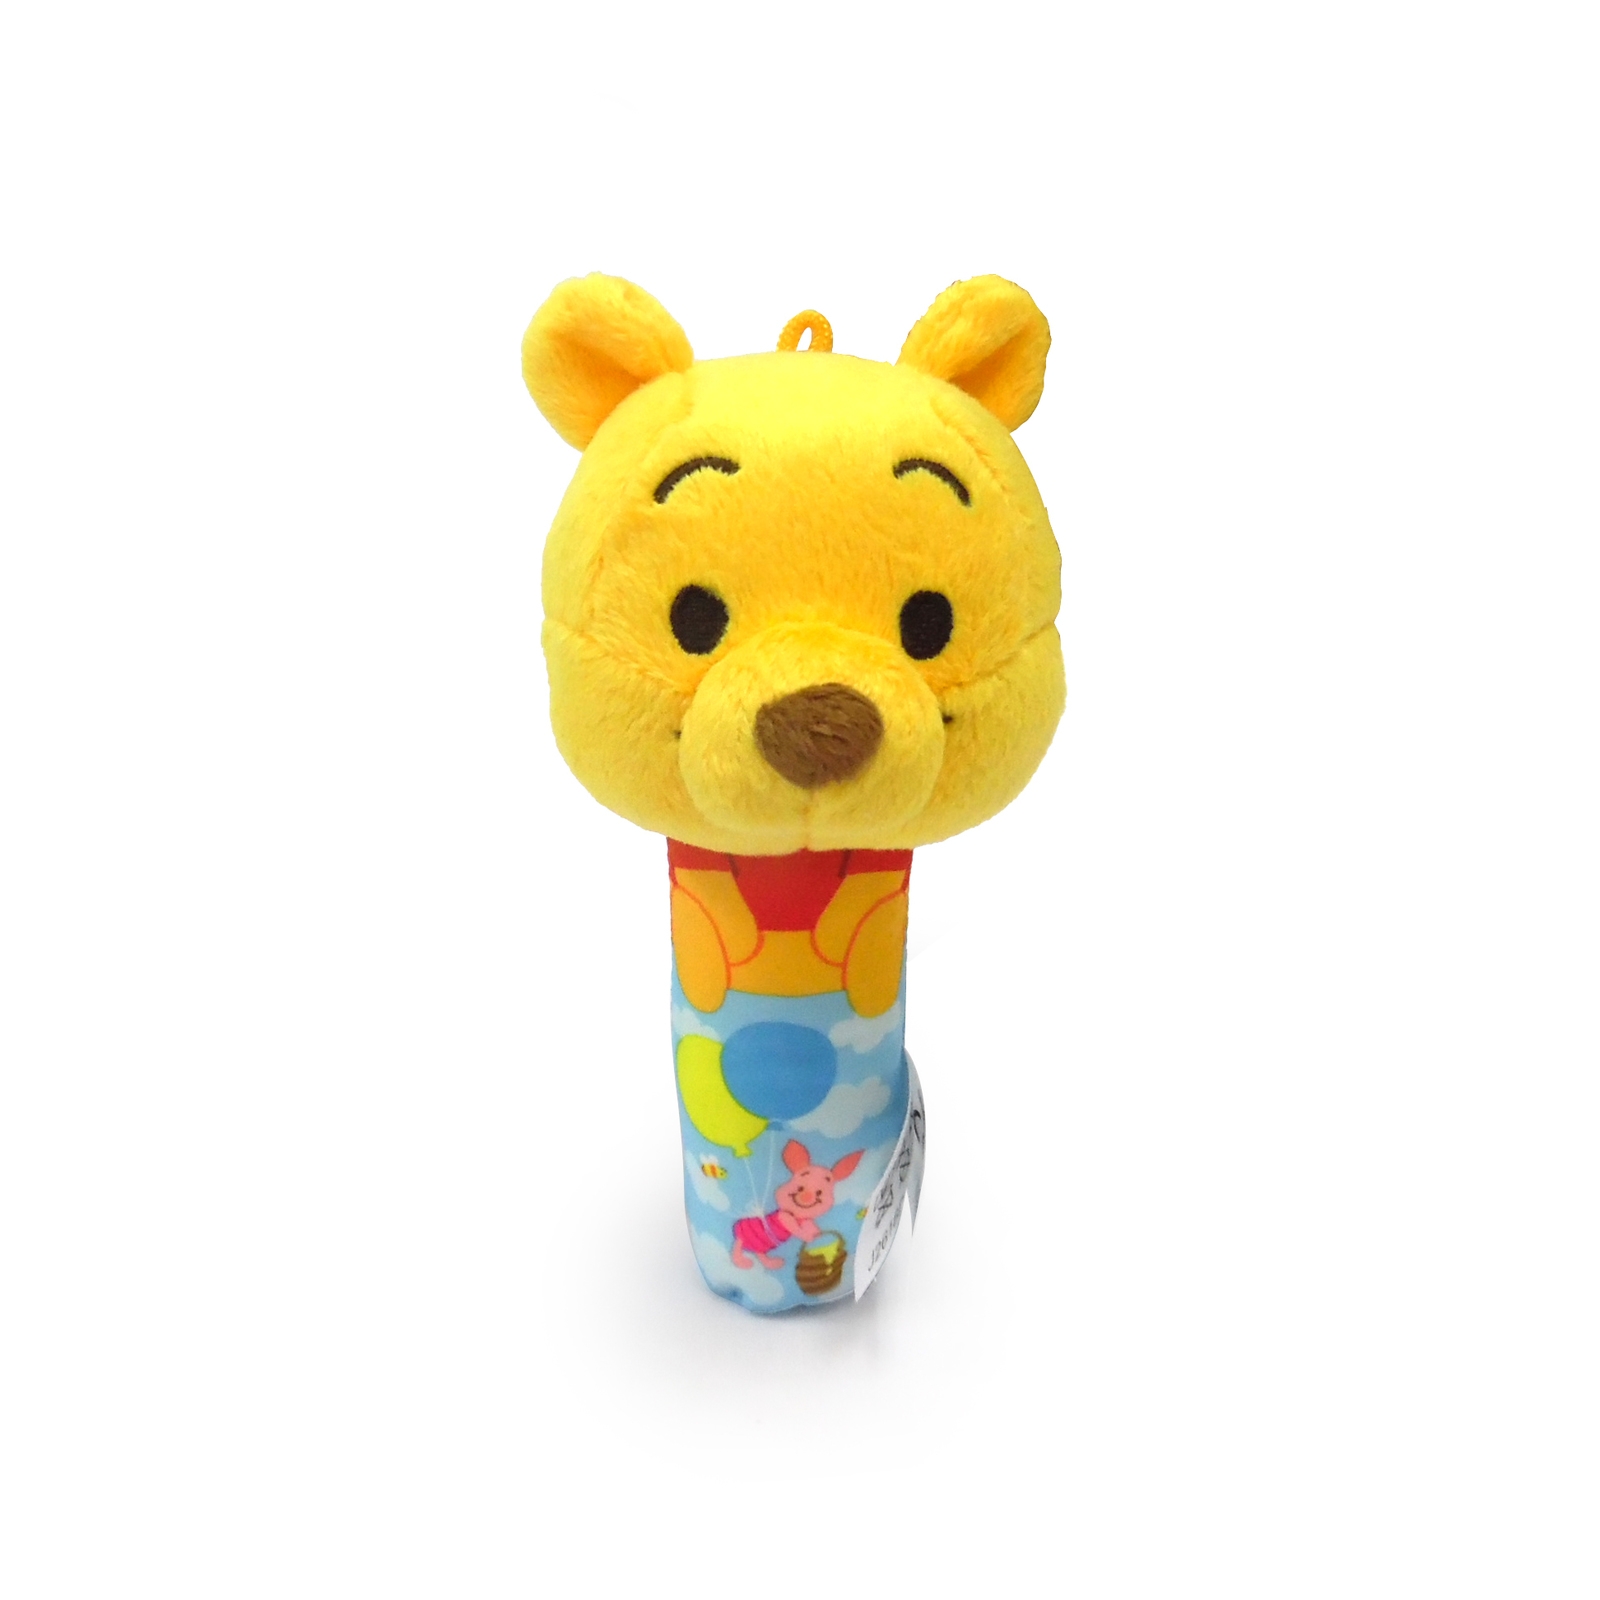 Winnie the Pooh Squeaker Plush Toy image